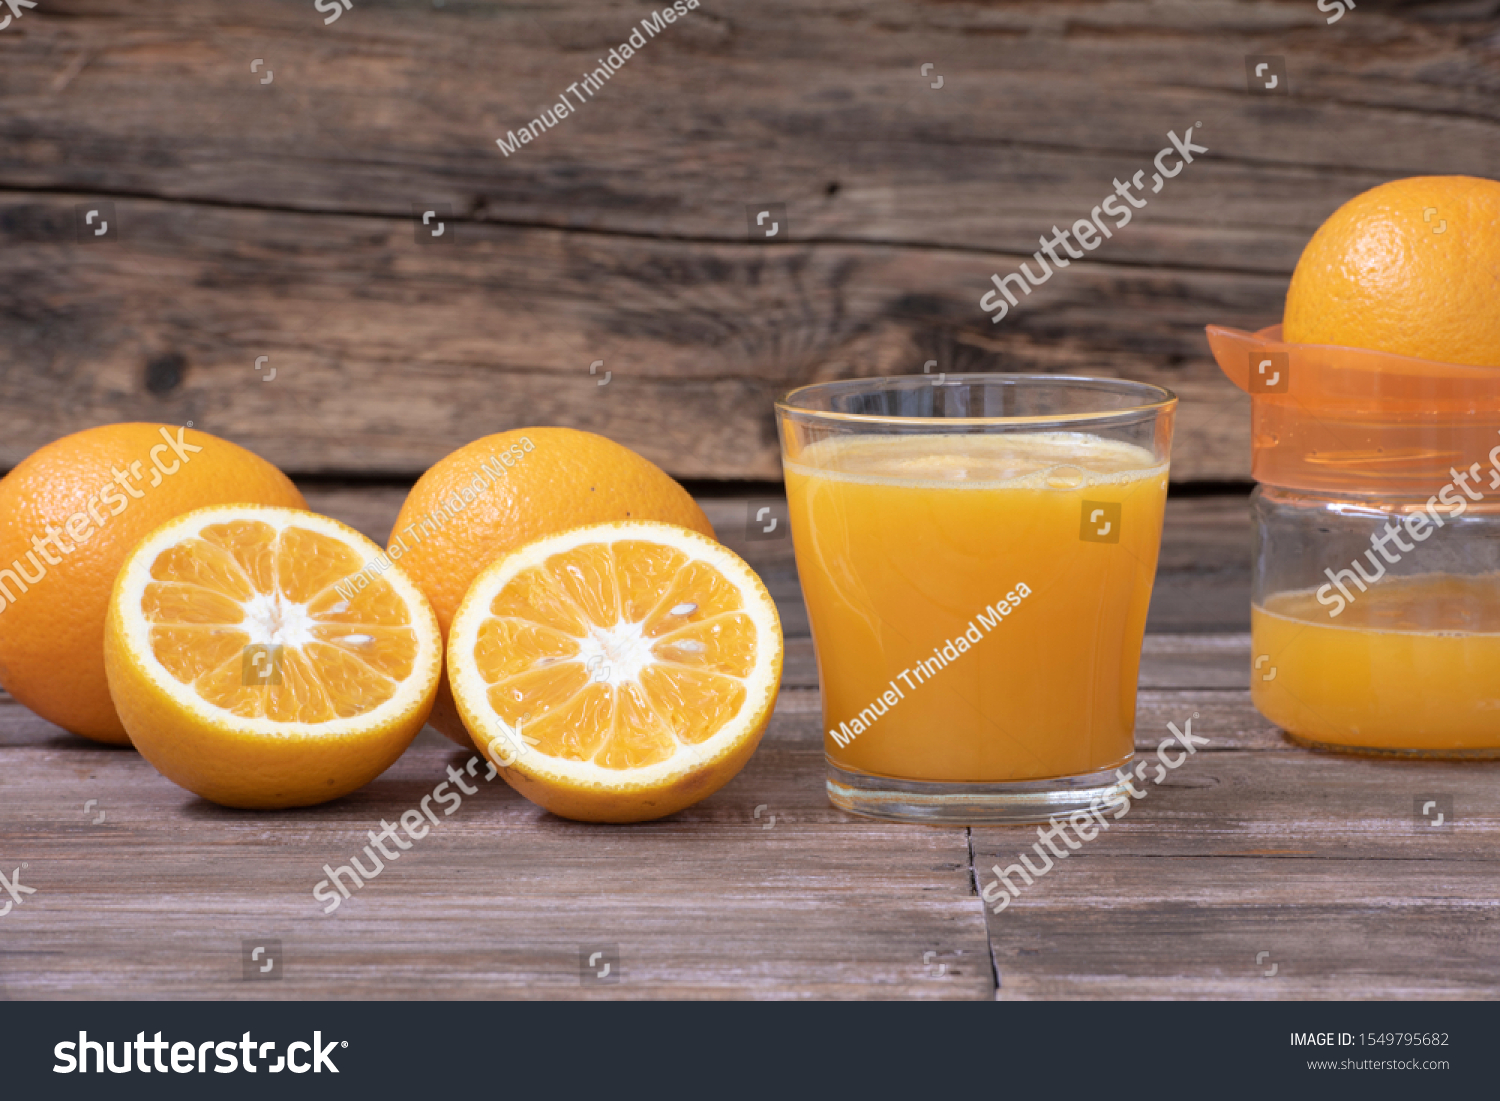 stock-photo-a-glass-of-orange-juice-and-